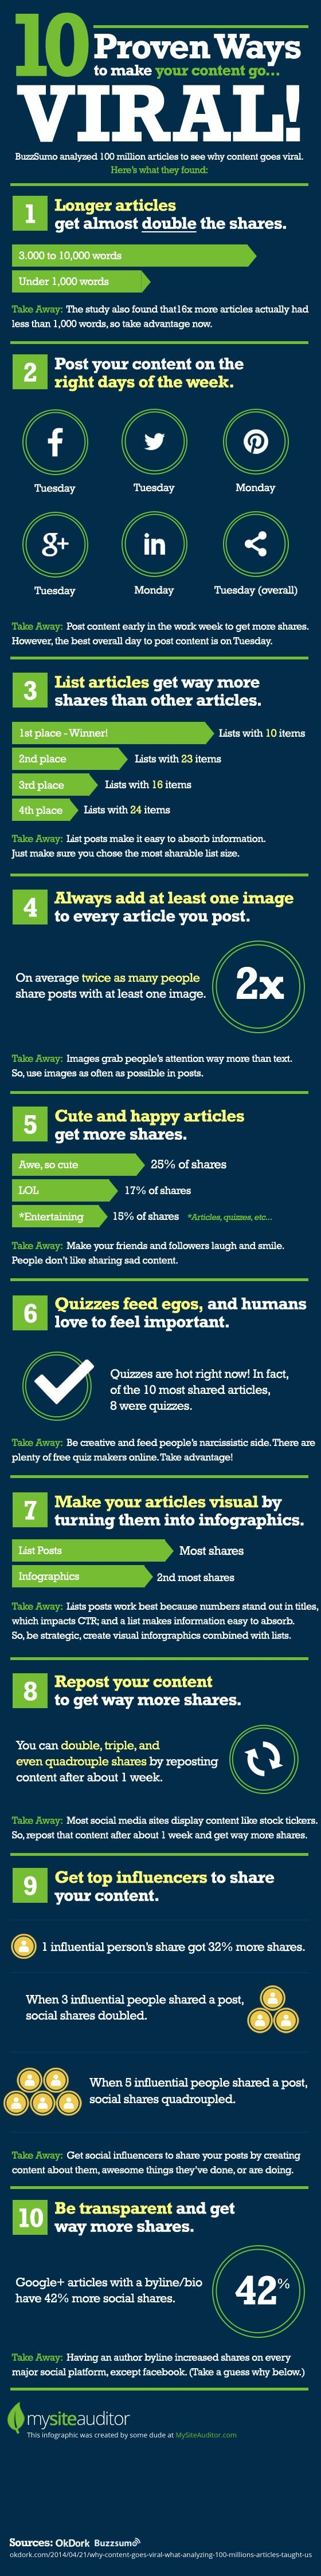 10 Proven Ways to Make Content Go Viral [Infographic] | Social Media Today